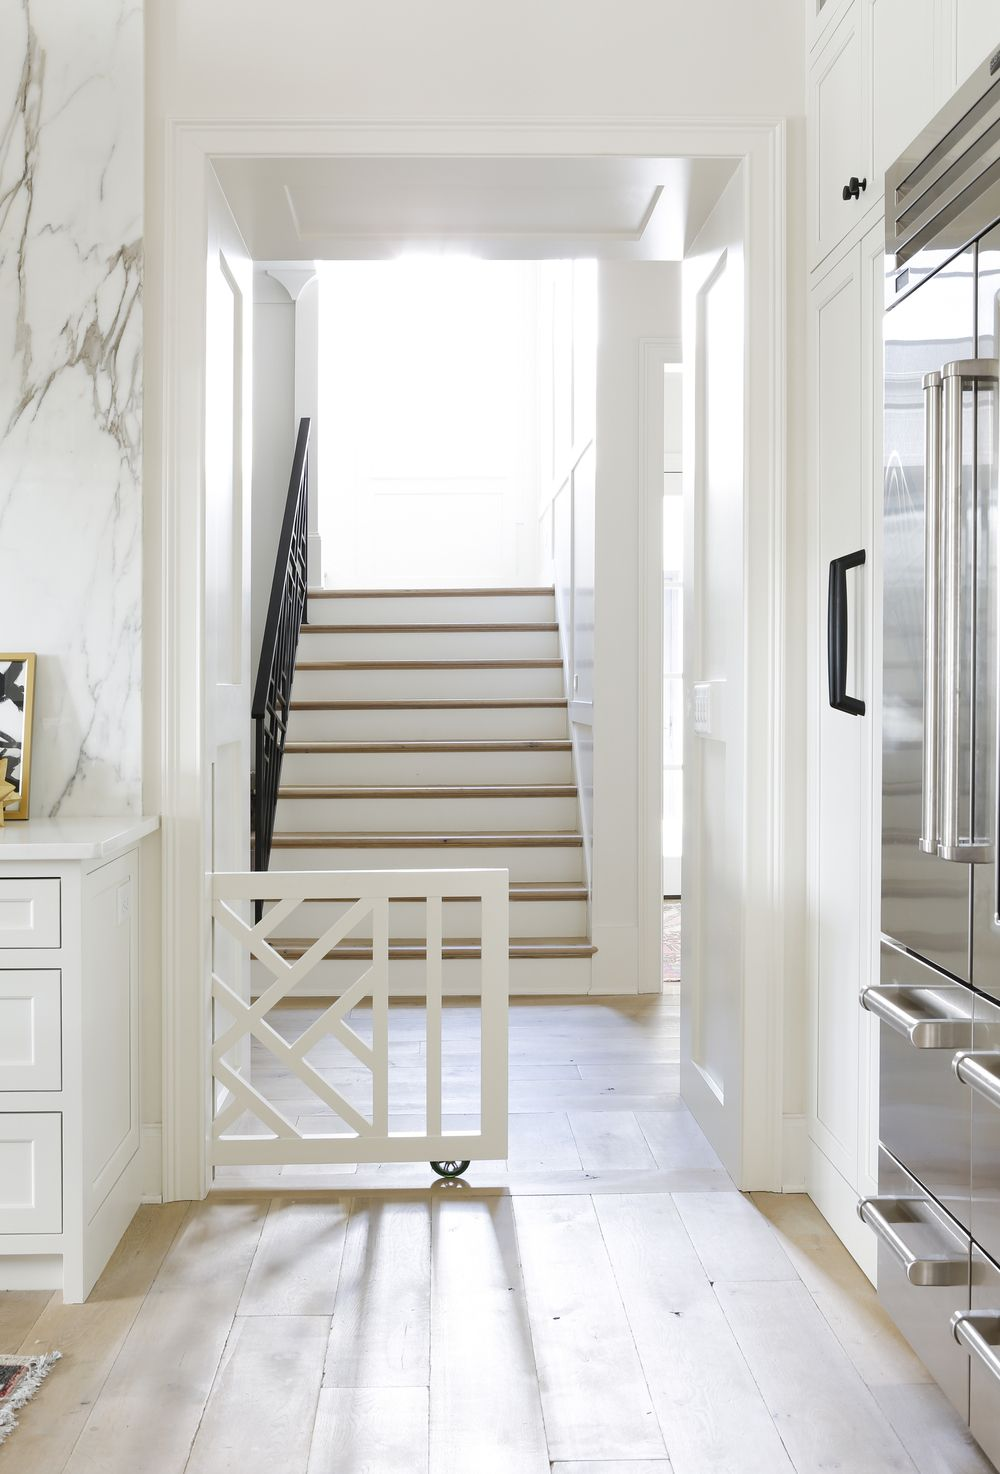 A White Lattice Safety Gate Opens To A Kitchen Clad In Rustic Wood Plank  Floors.